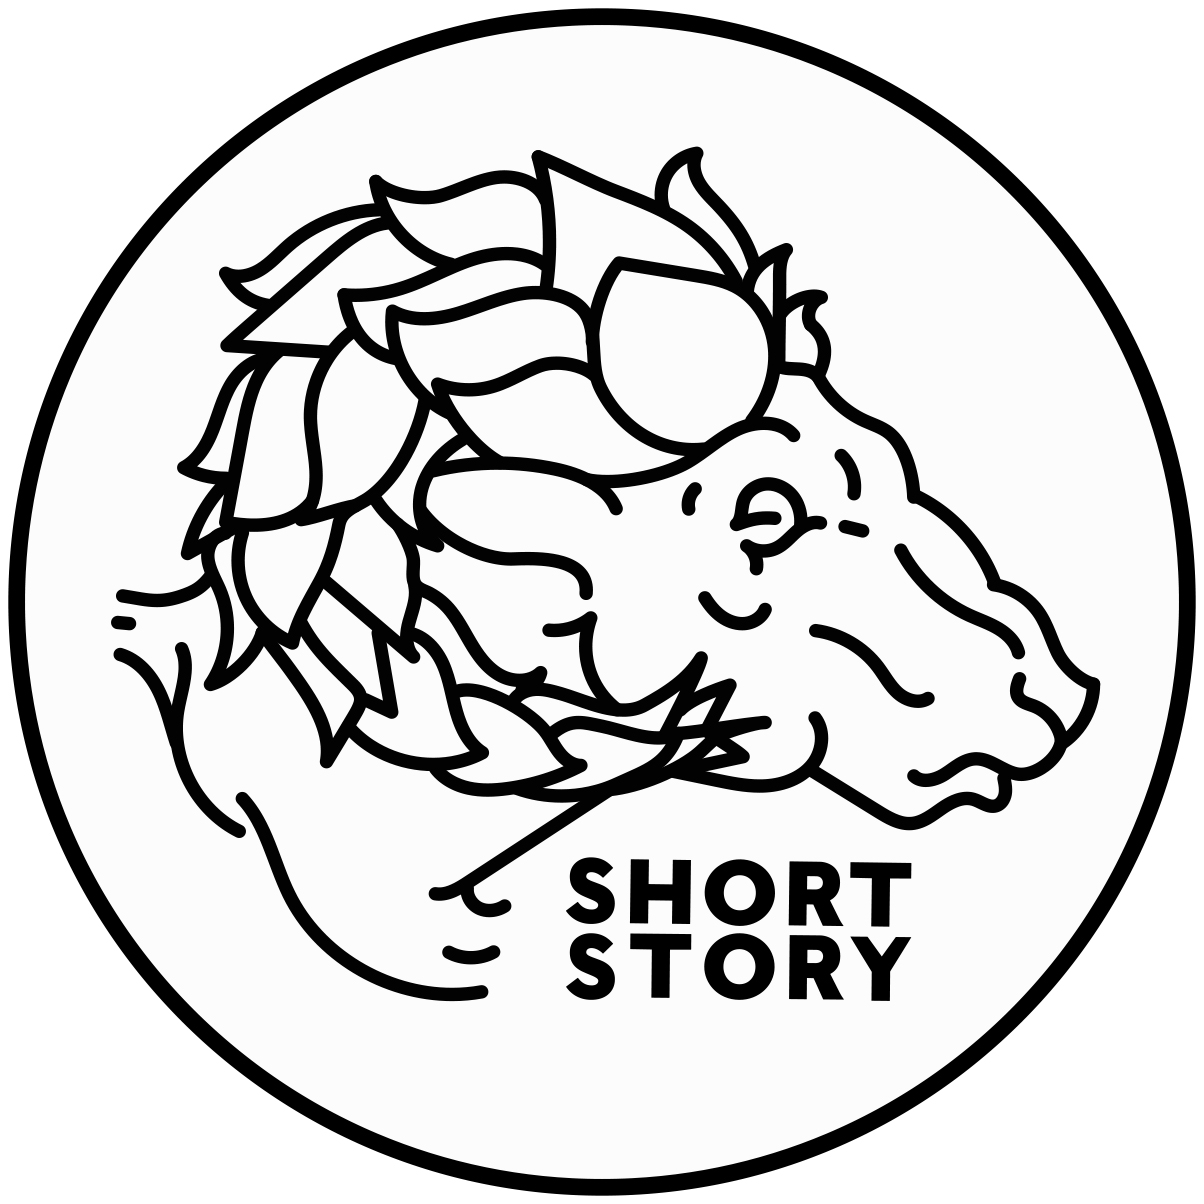 Short Story Brewery